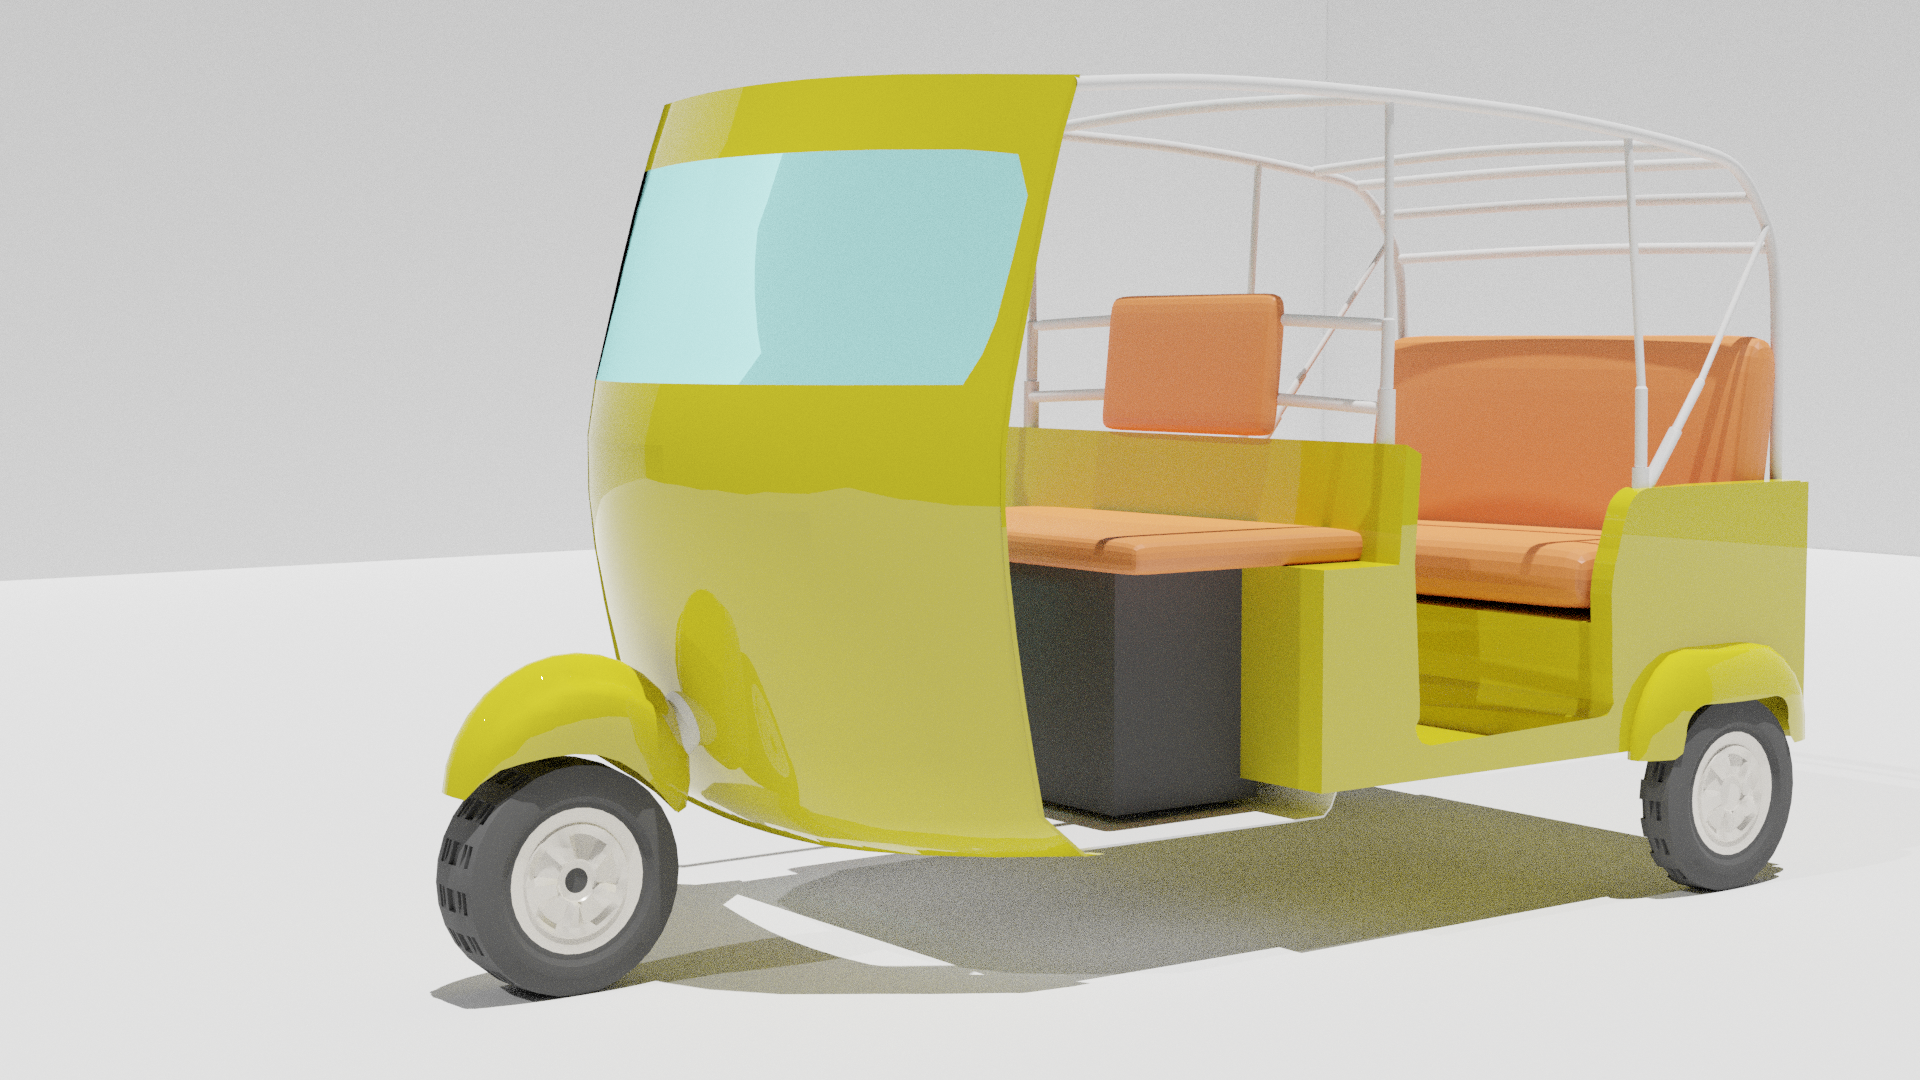 tricycle preview image 1